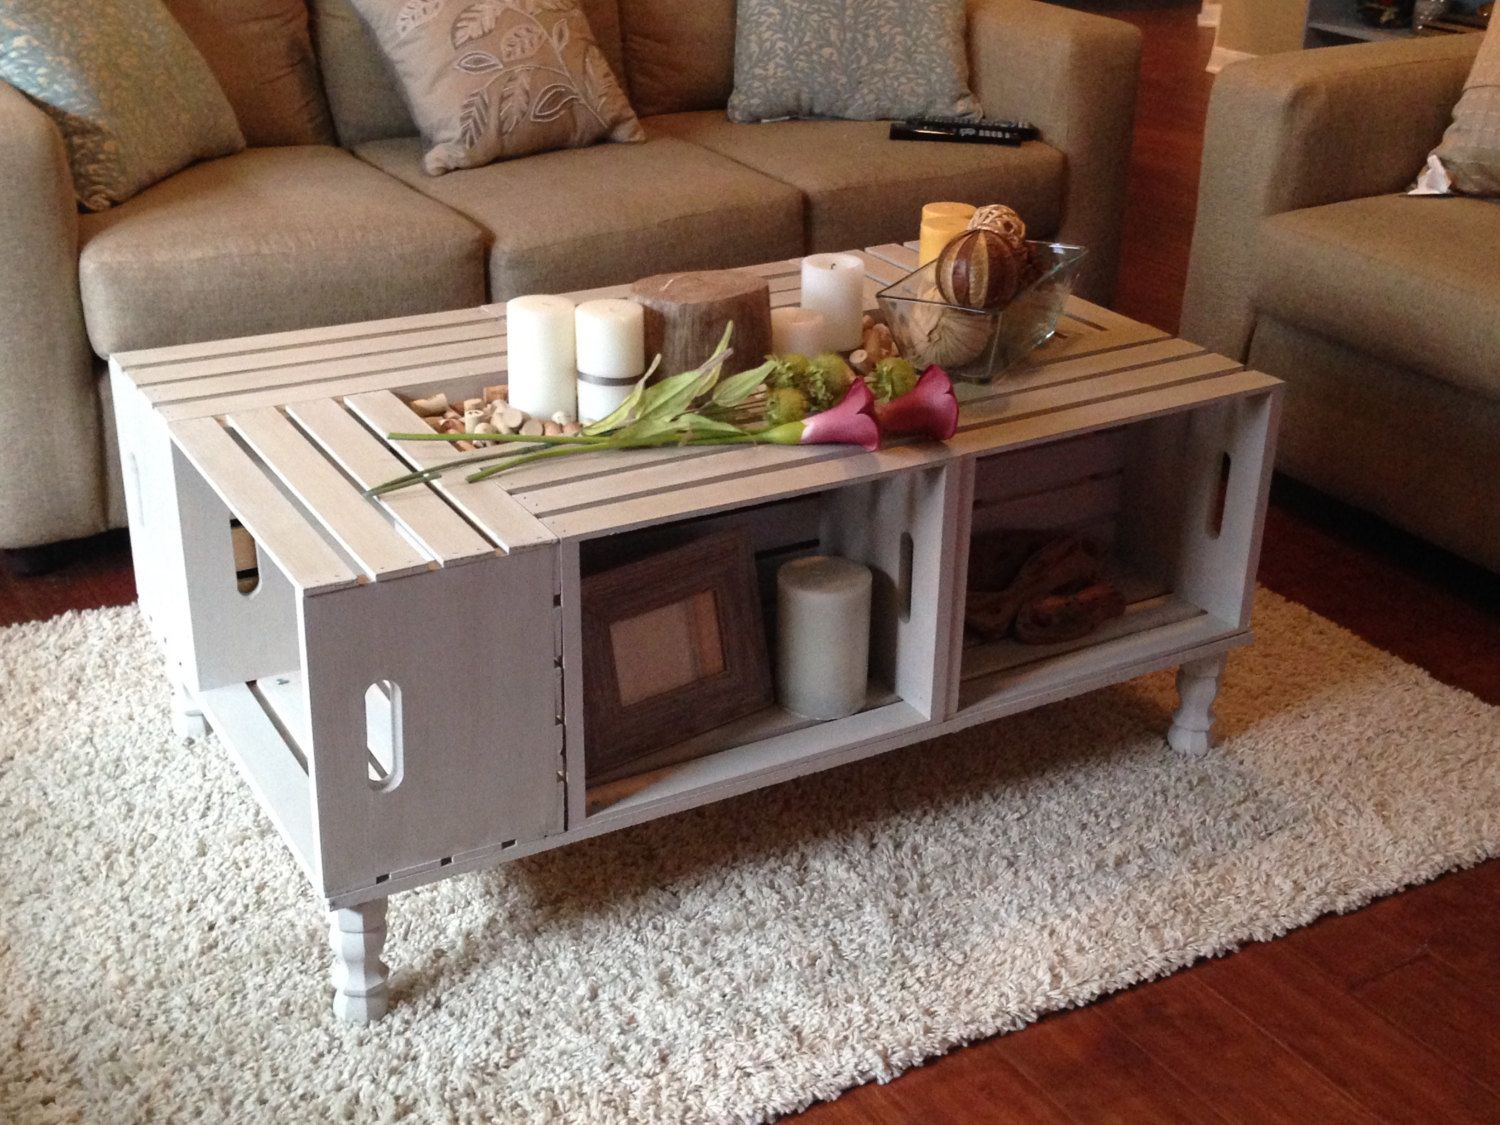 Apfelkisten Couchtisch Shabby Chic Wine Crate Coffee Table Ideen In 2019 Home Decor